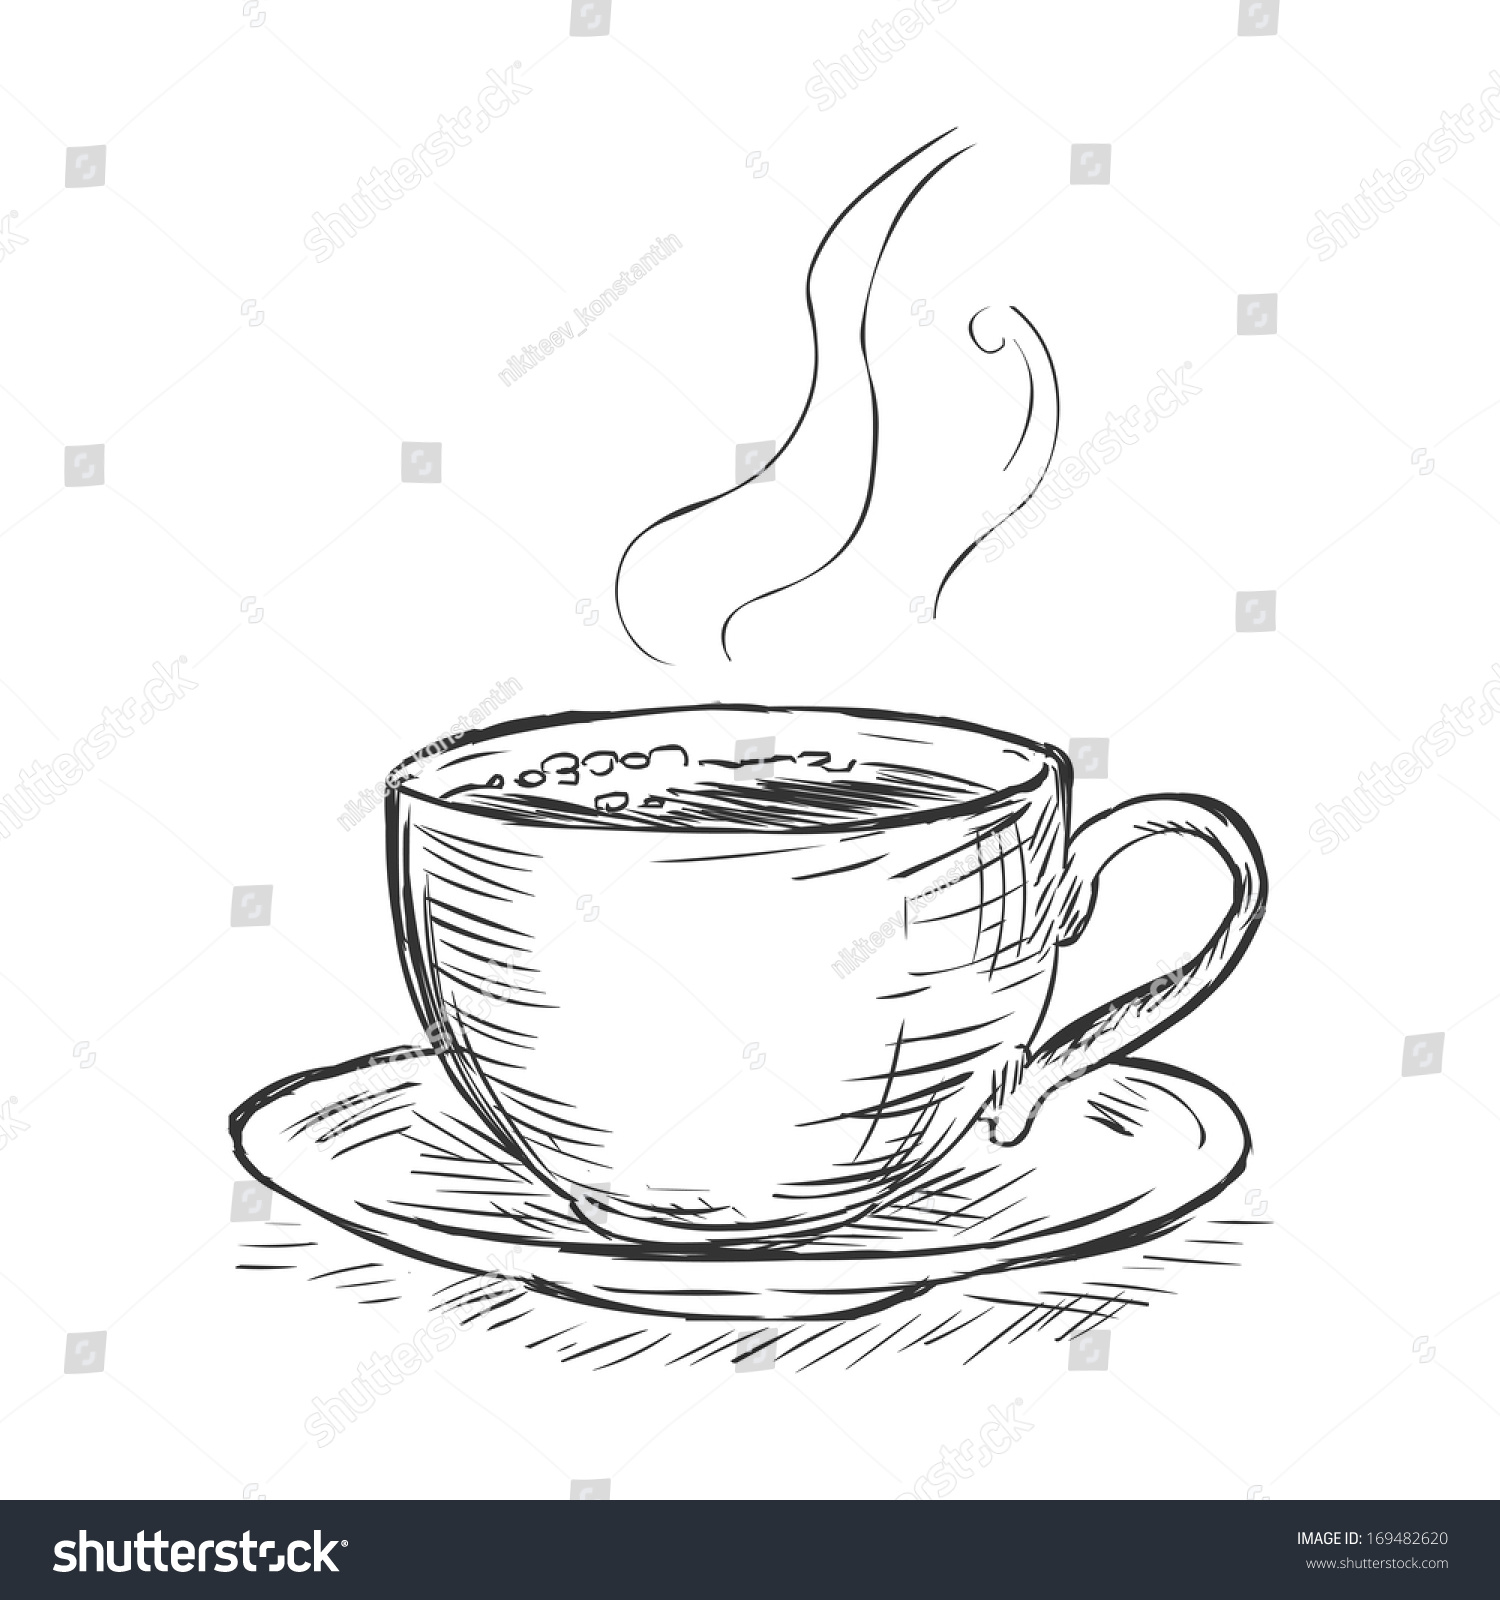 Coffee cup sketch - Vector Sketch Illustration Cup Of Coffee